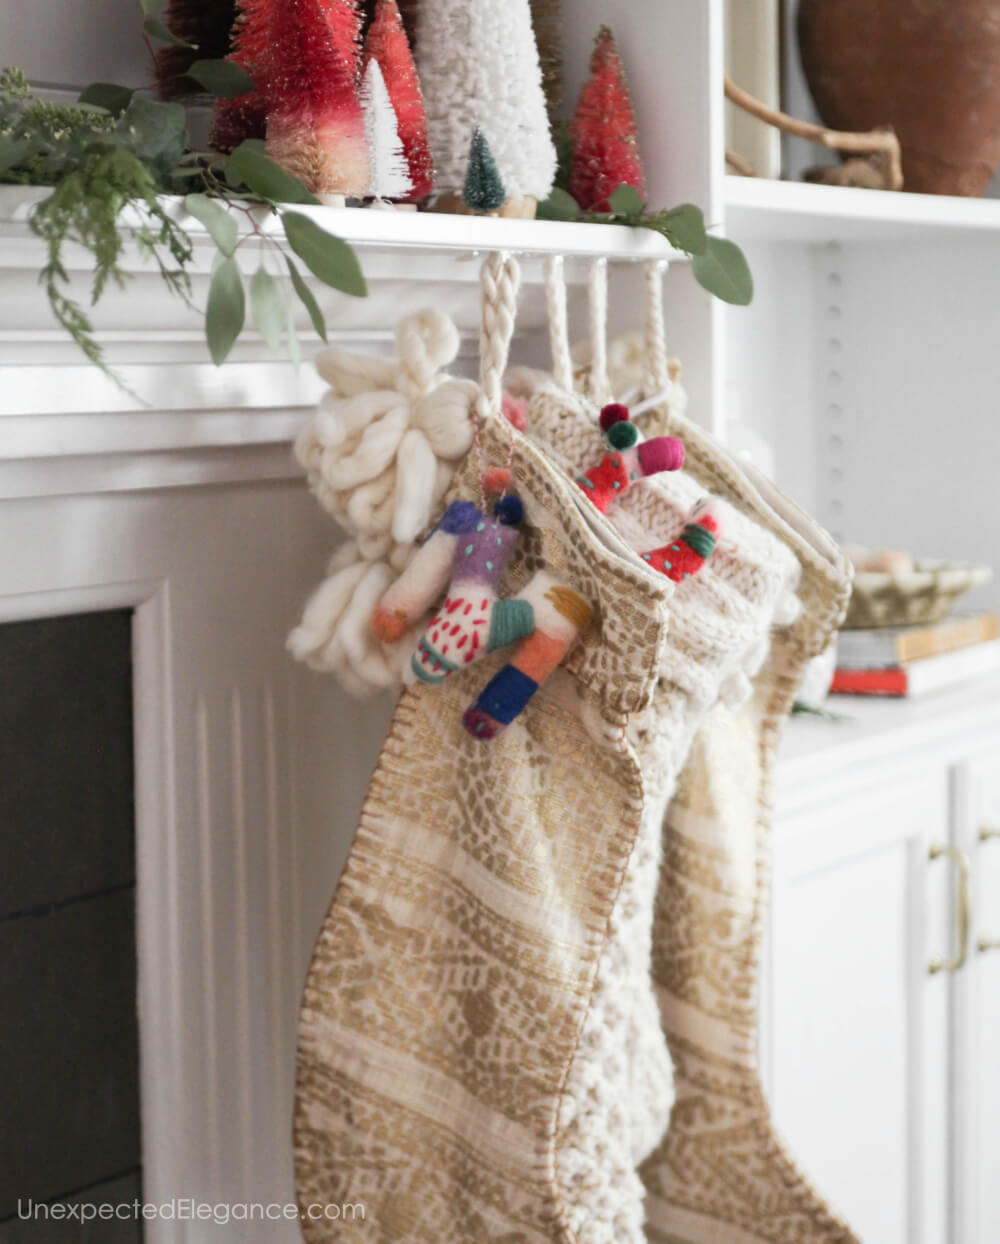 Simple holiday decor ideas to create an inviting home without the stress.